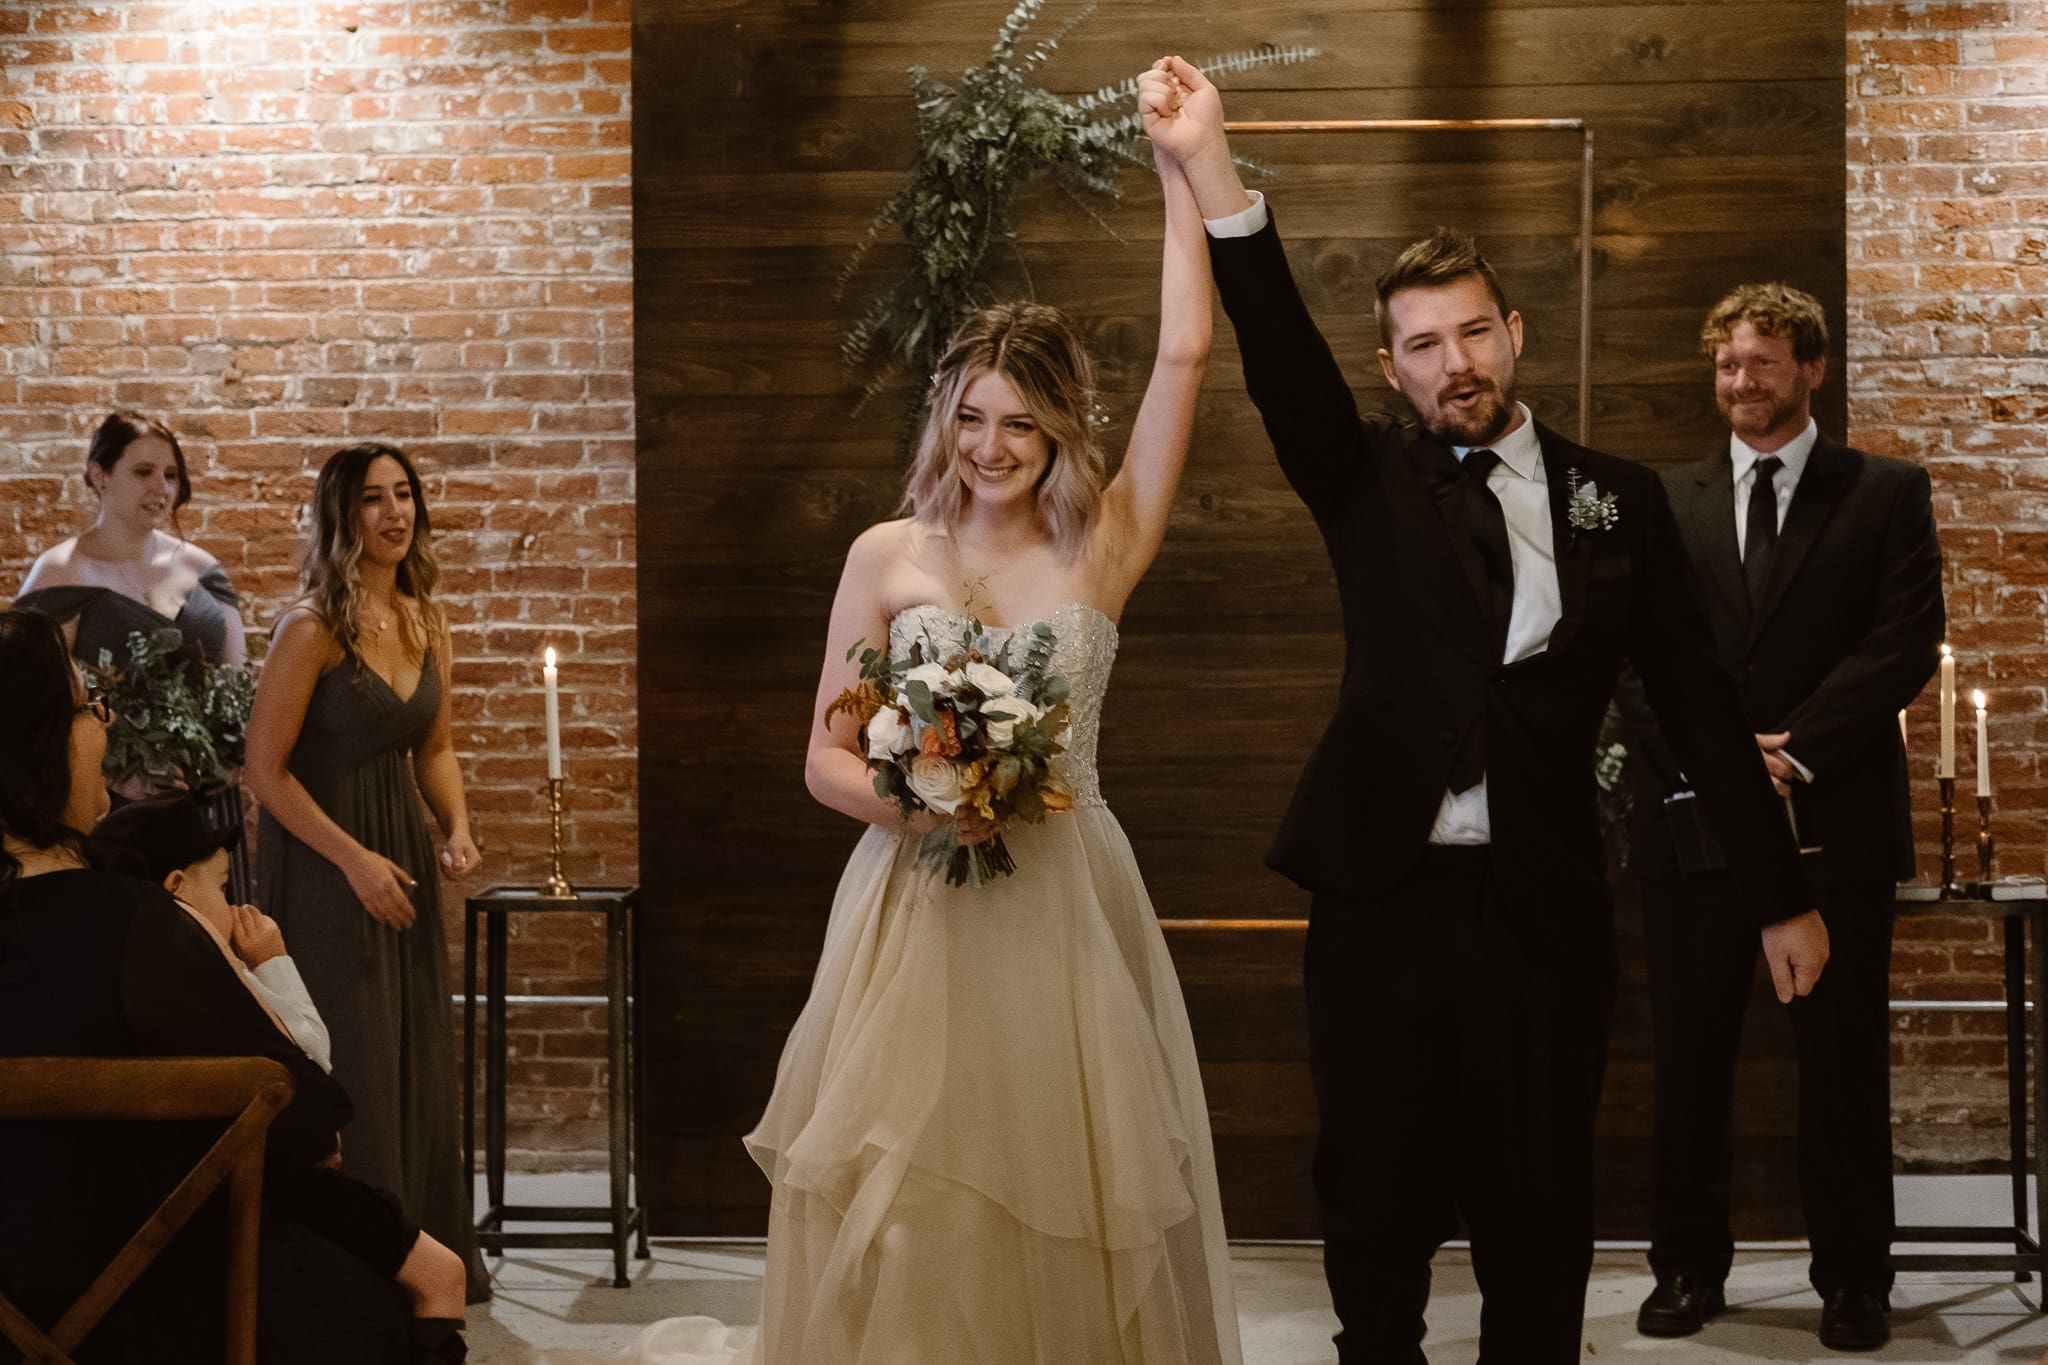 St Vrain Wedding Photographer | Longmont Wedding Photographer | Colorado Winter Wedding Photographer, Colorado industrial chic wedding ceremony, ceremony recessional